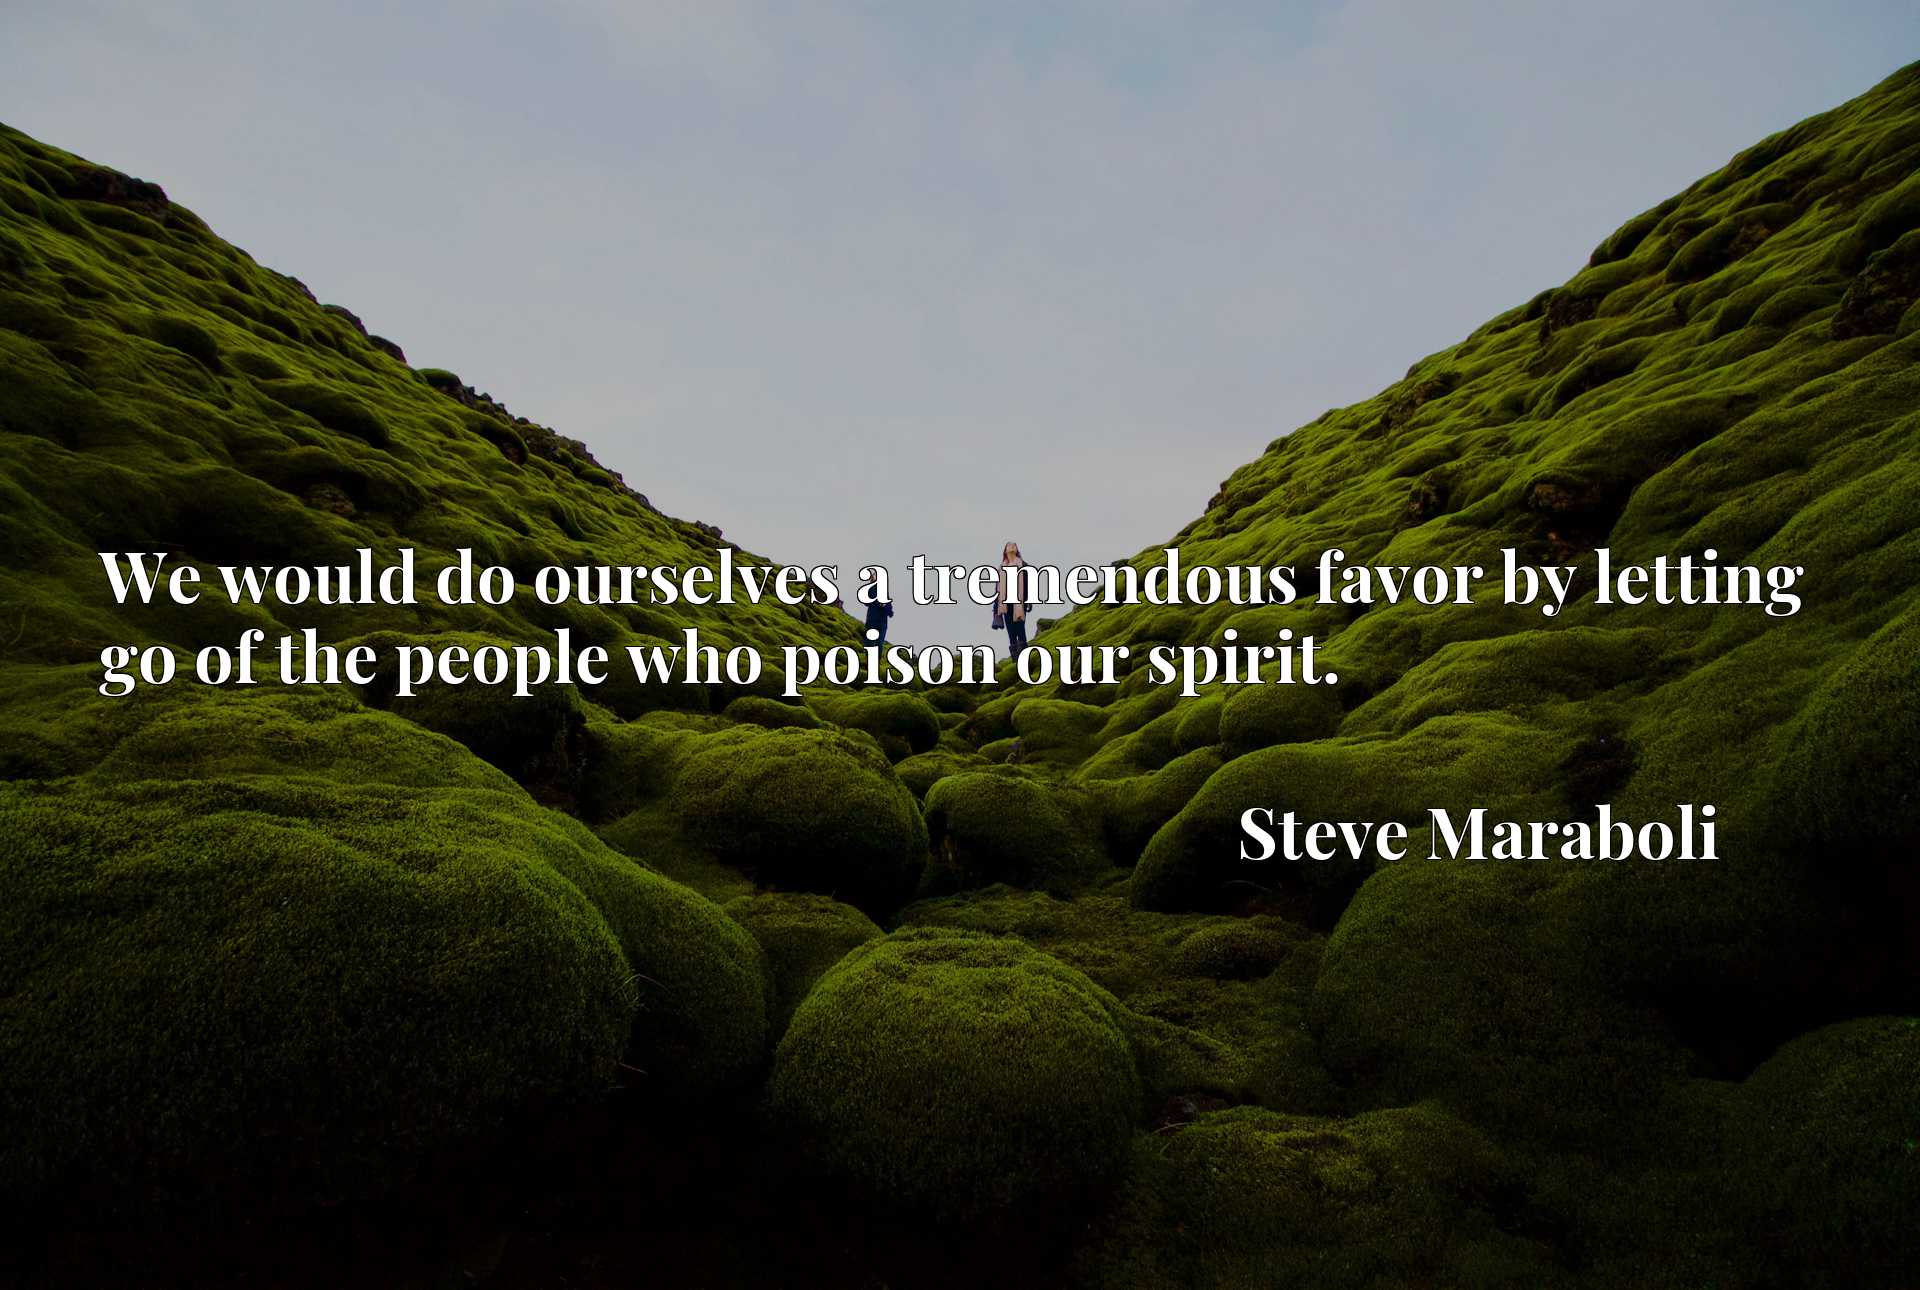 Quote Picture :We would do ourselves a tremendous favor by letting go of the people who poison our spirit.